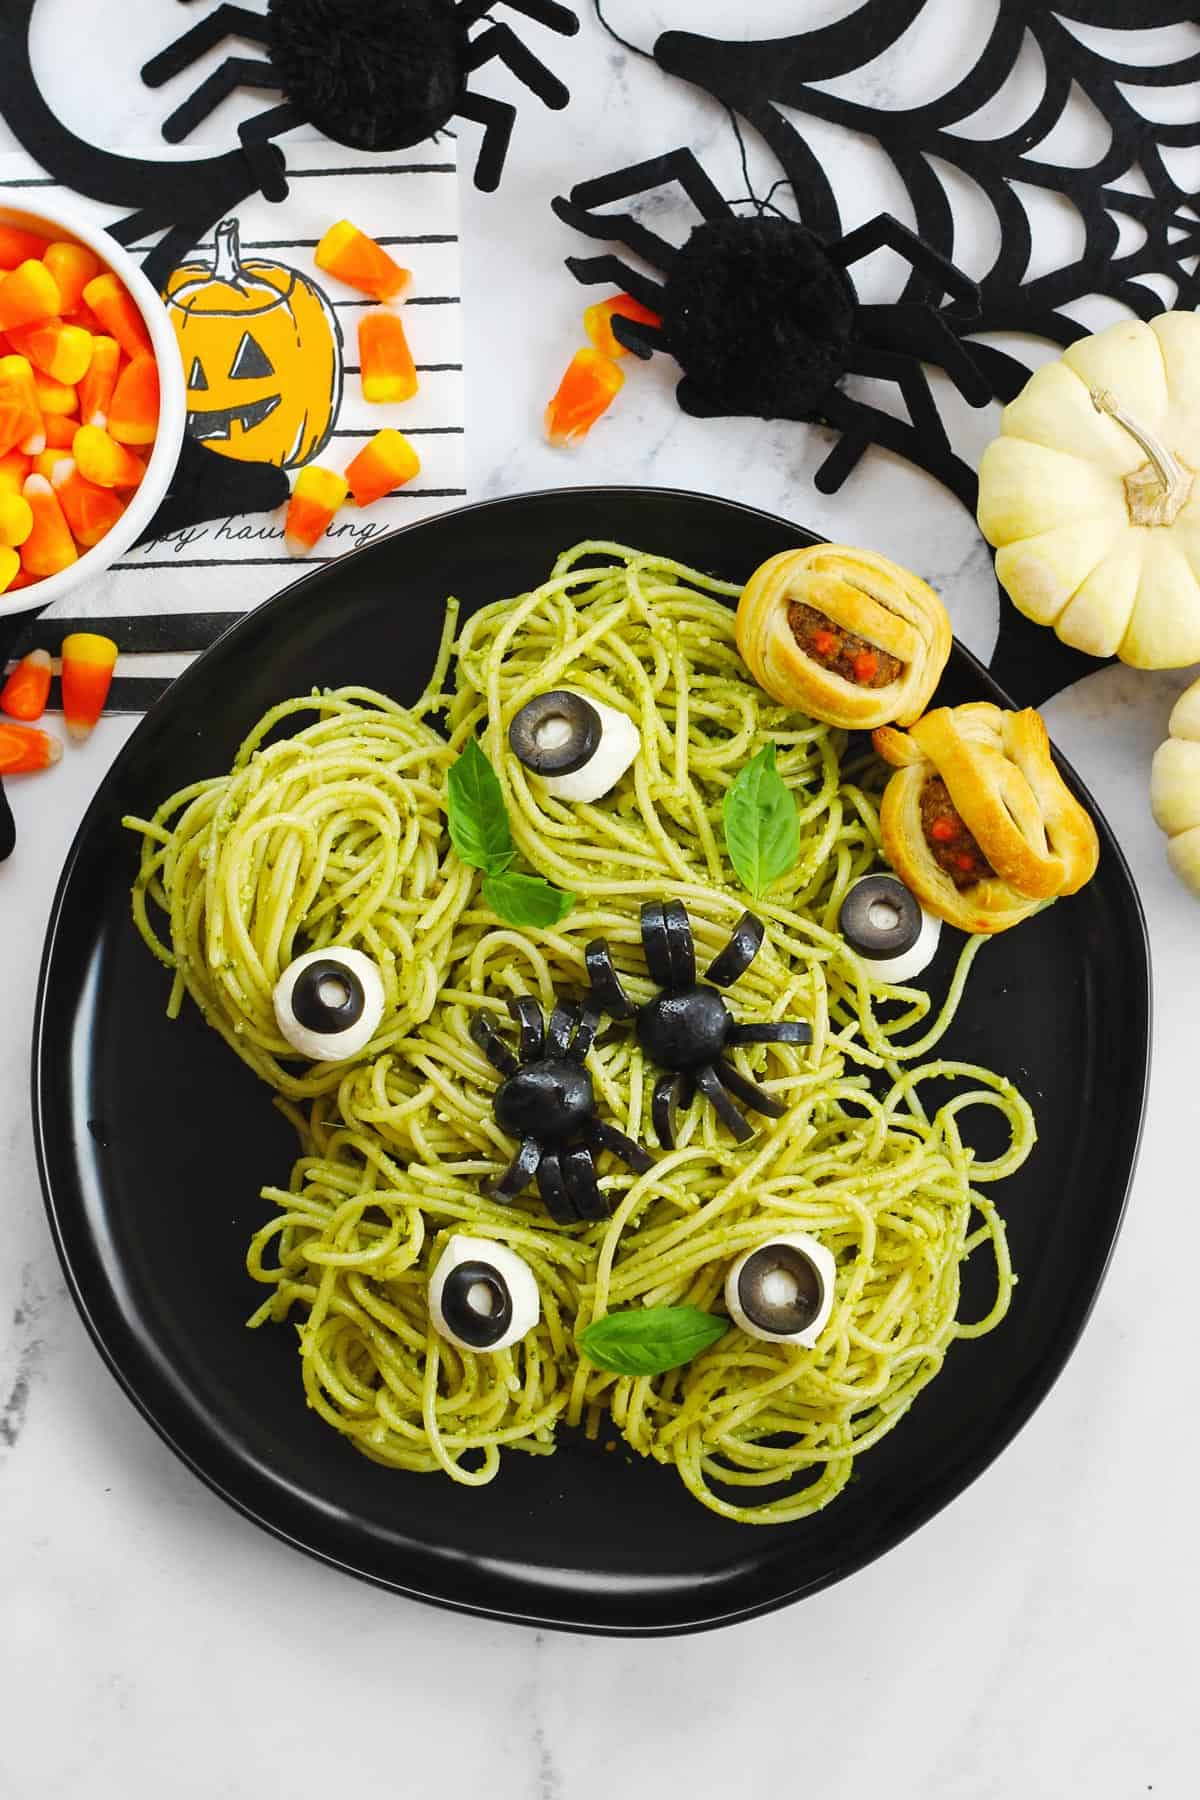 Spooky spaghetti with eyeballs and spiders